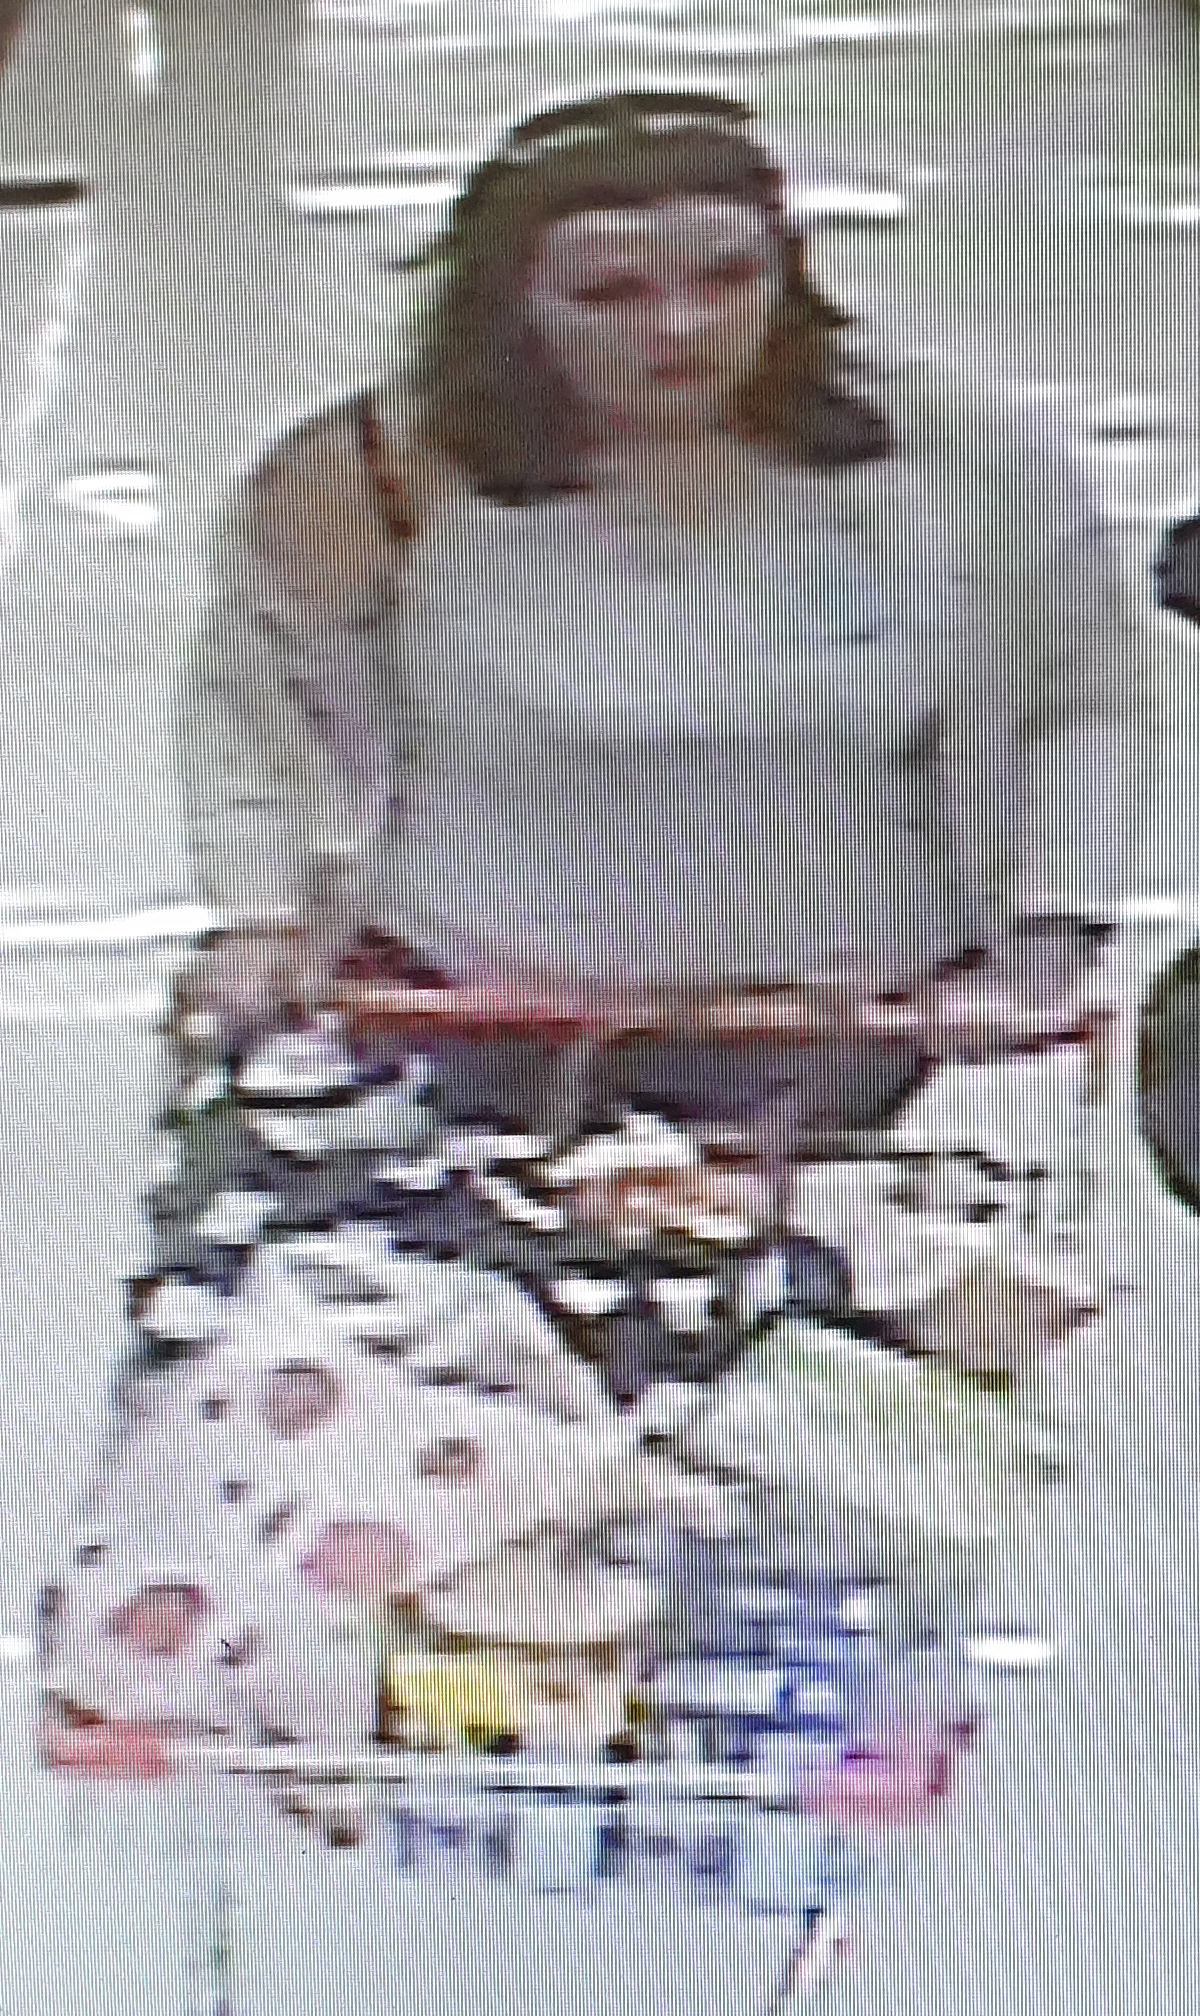 Picture of woman police would like to speak to in relation to stealing matter in Ulverstone